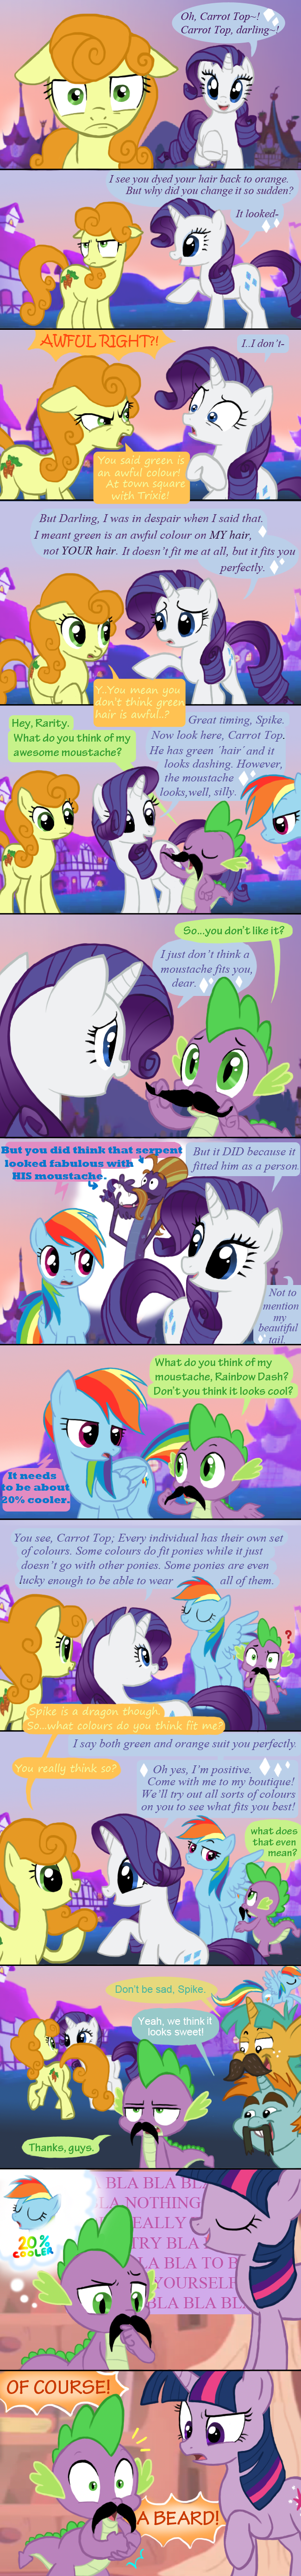 MLP FiM During Boast Busters by PepperSupreme